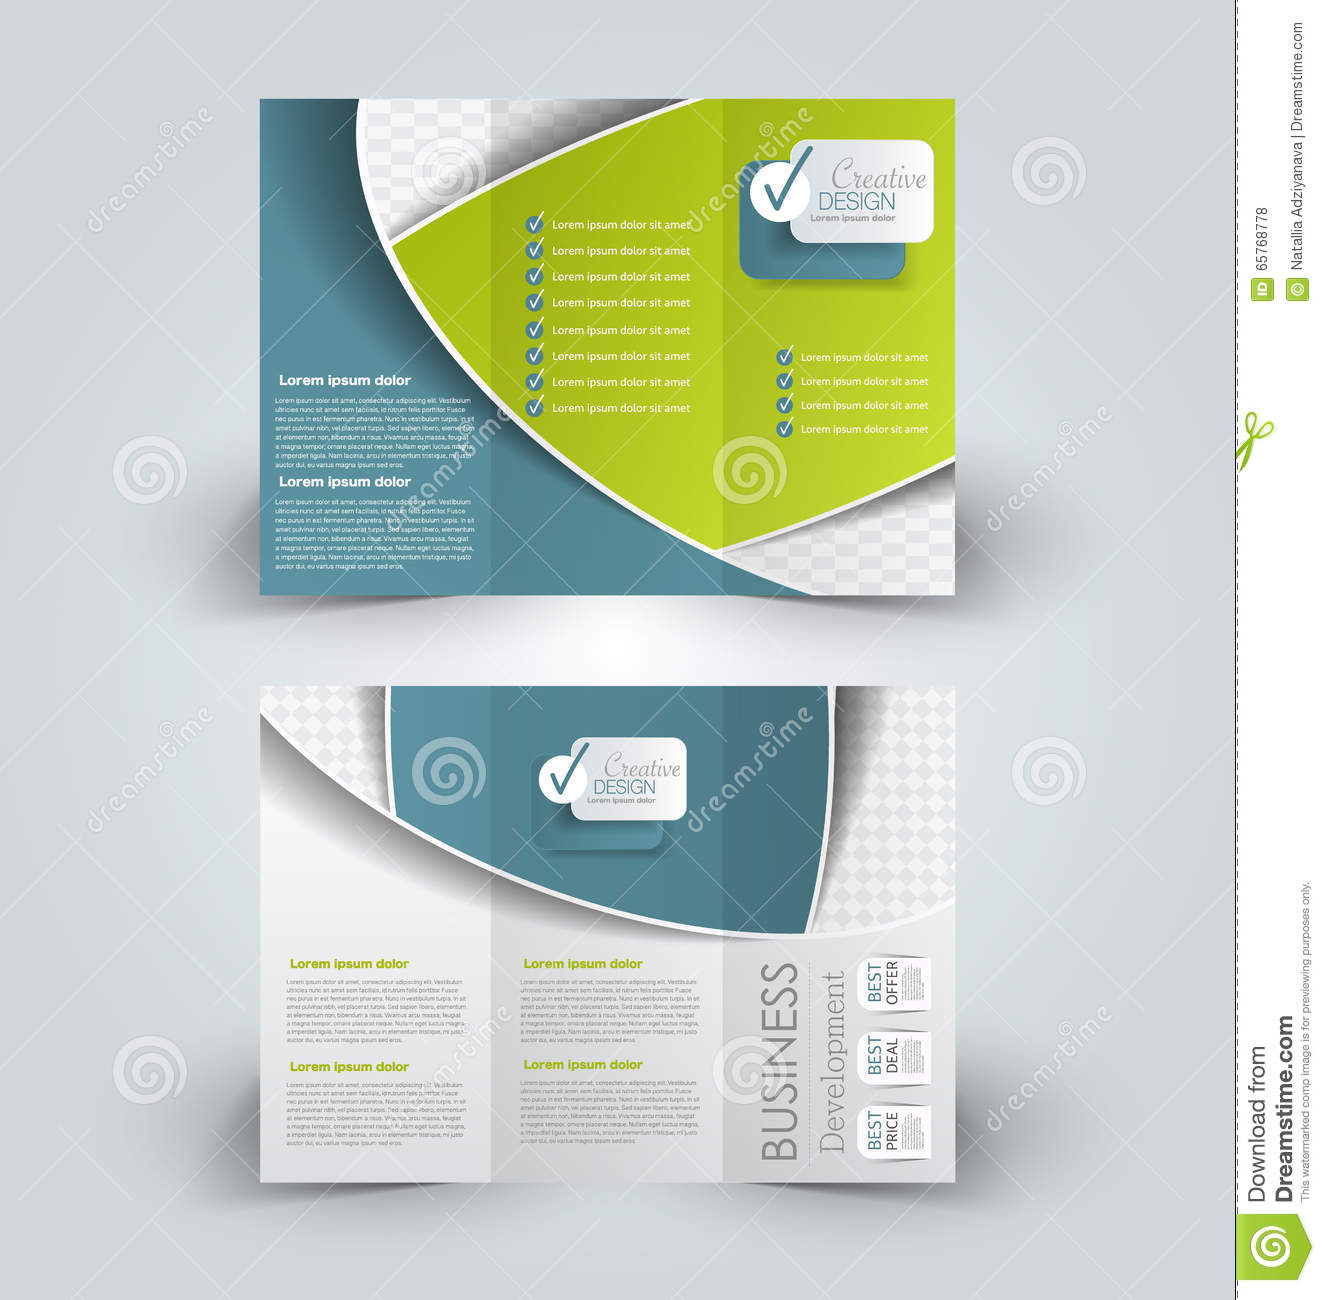 Brochure mock up design template stock vector image for Brochure insert template